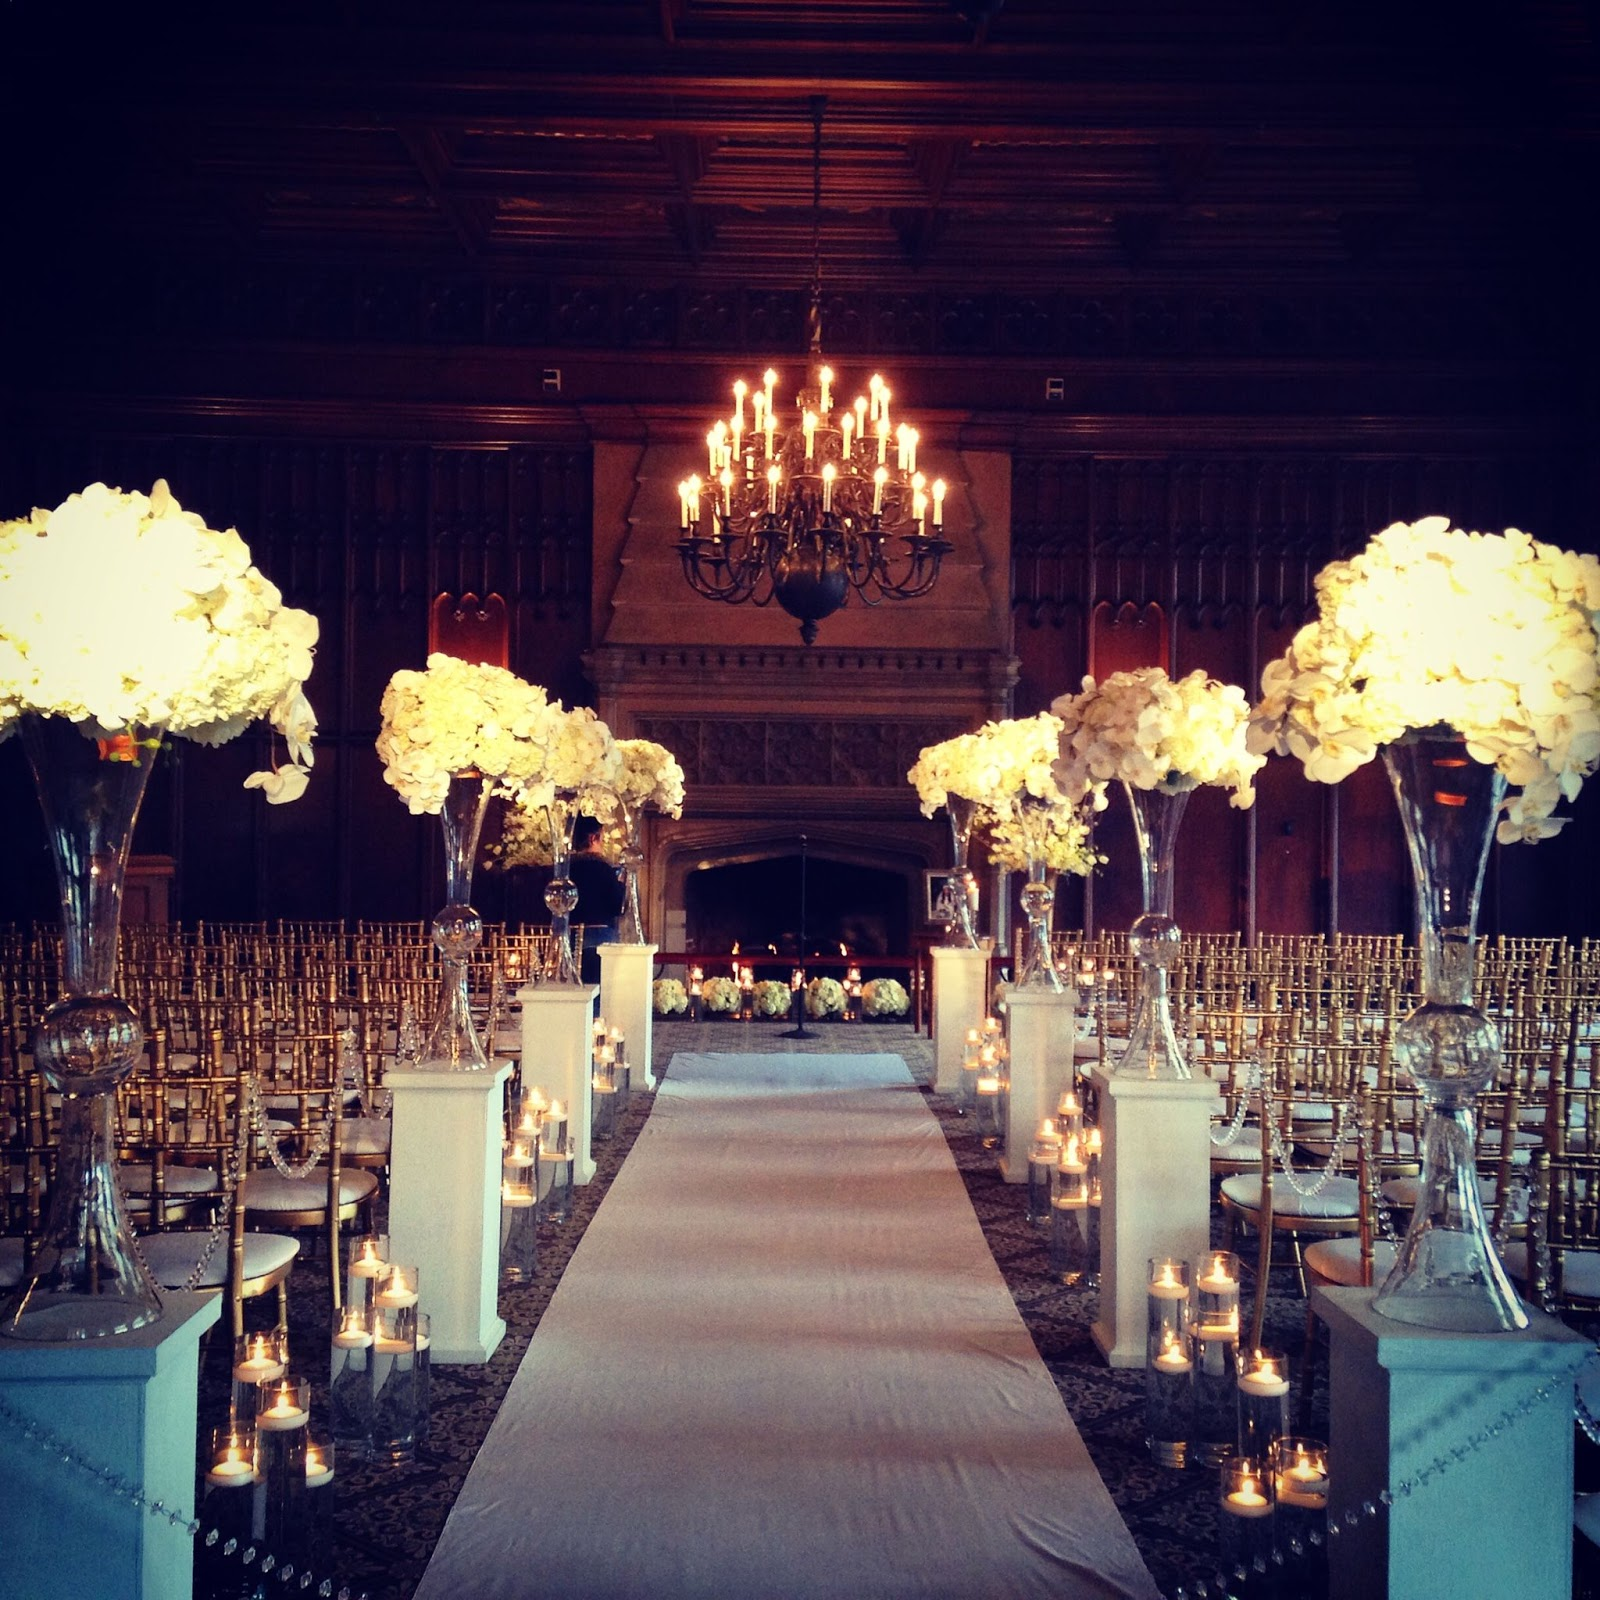 Wedding Ceremony And Reception In Same Location: Liven It Up Events Blog, Giving Your Wedding Planning